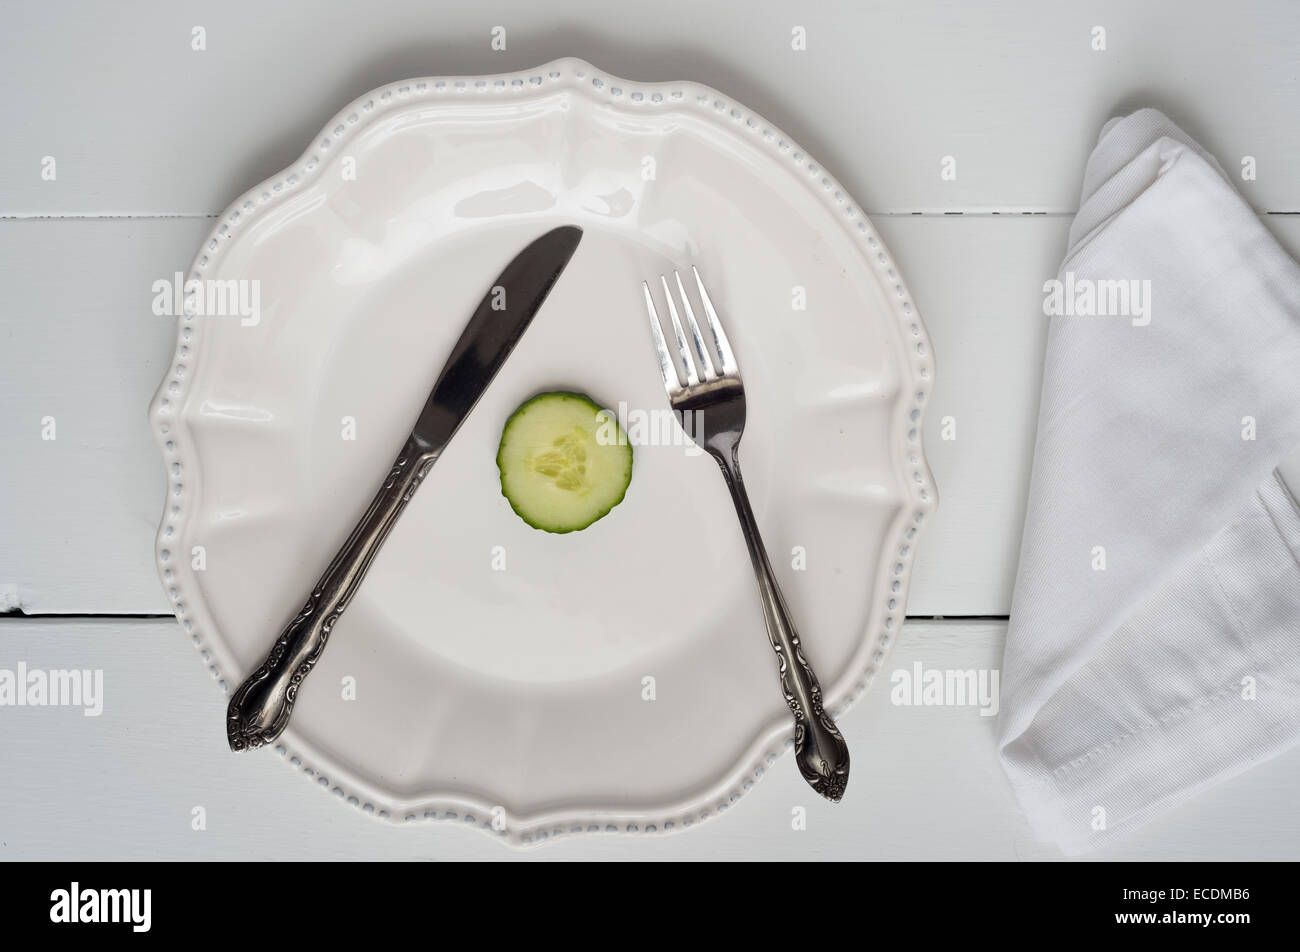 Weight loss new year's concept - single cucumber slice on a plate - Stock Image